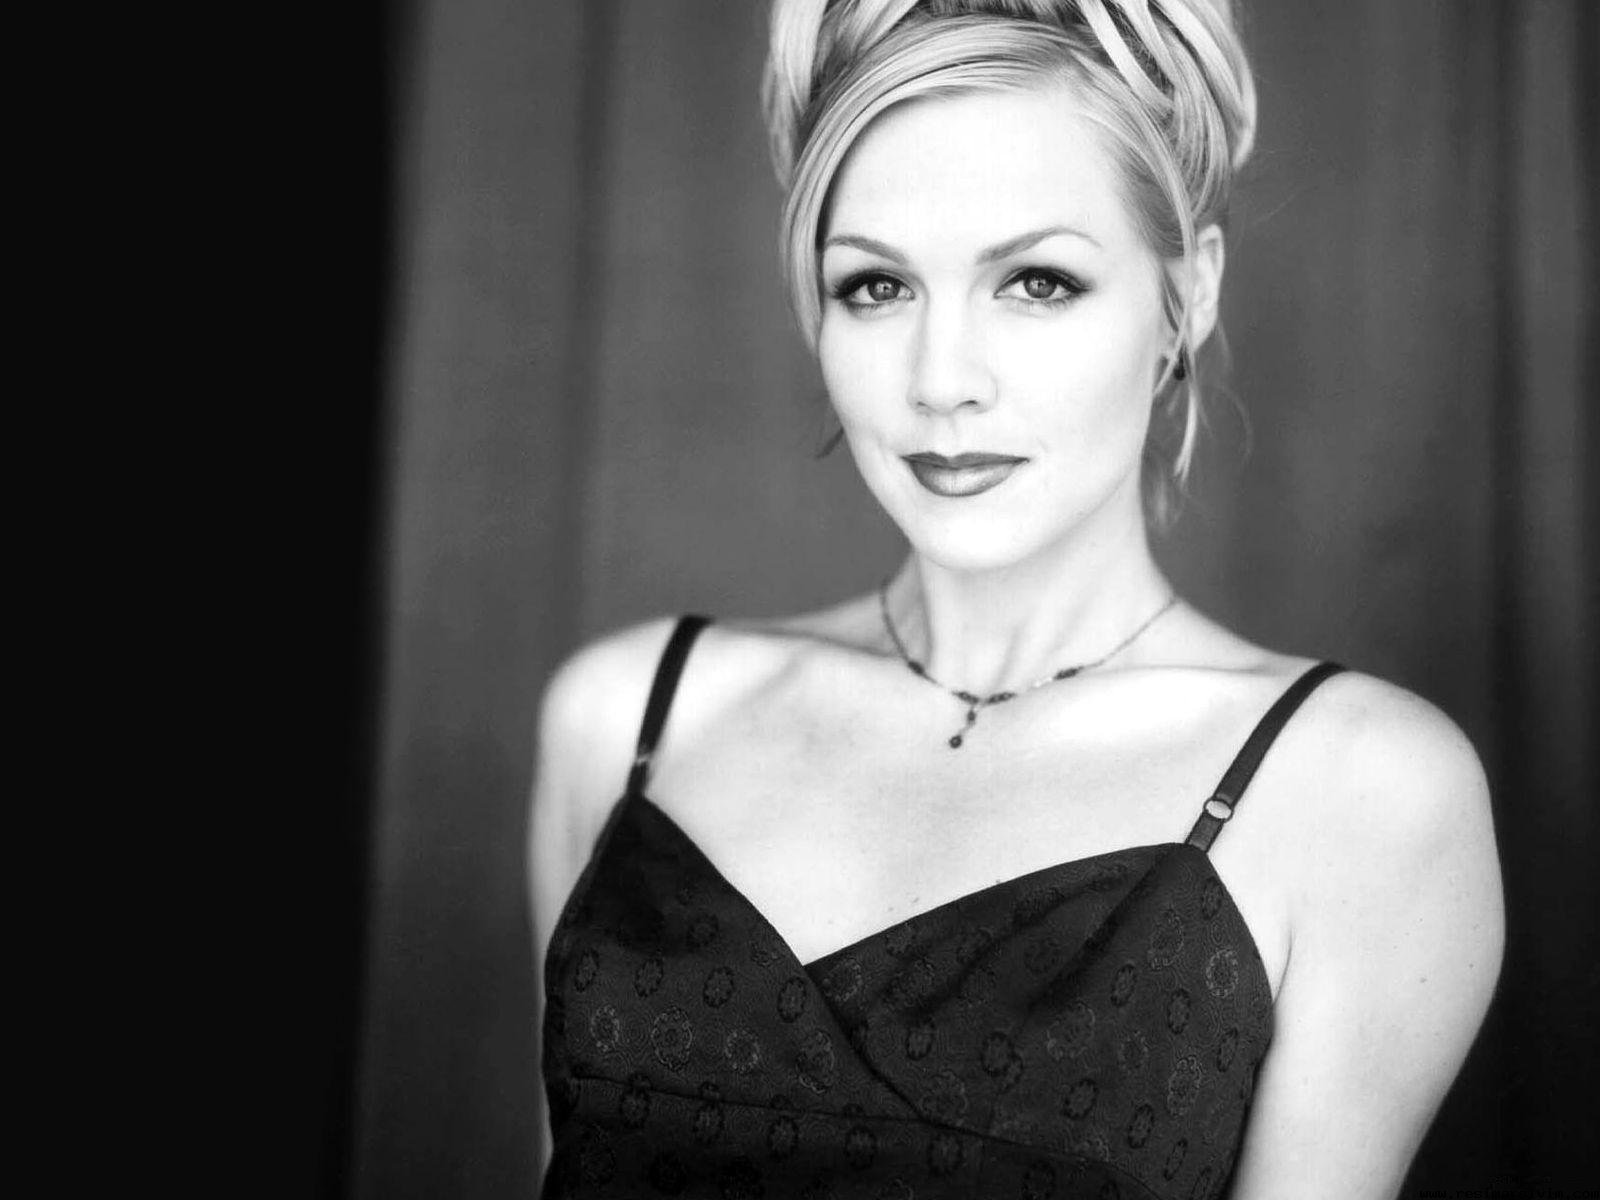 jennie garth wallpapers hd - photo #13